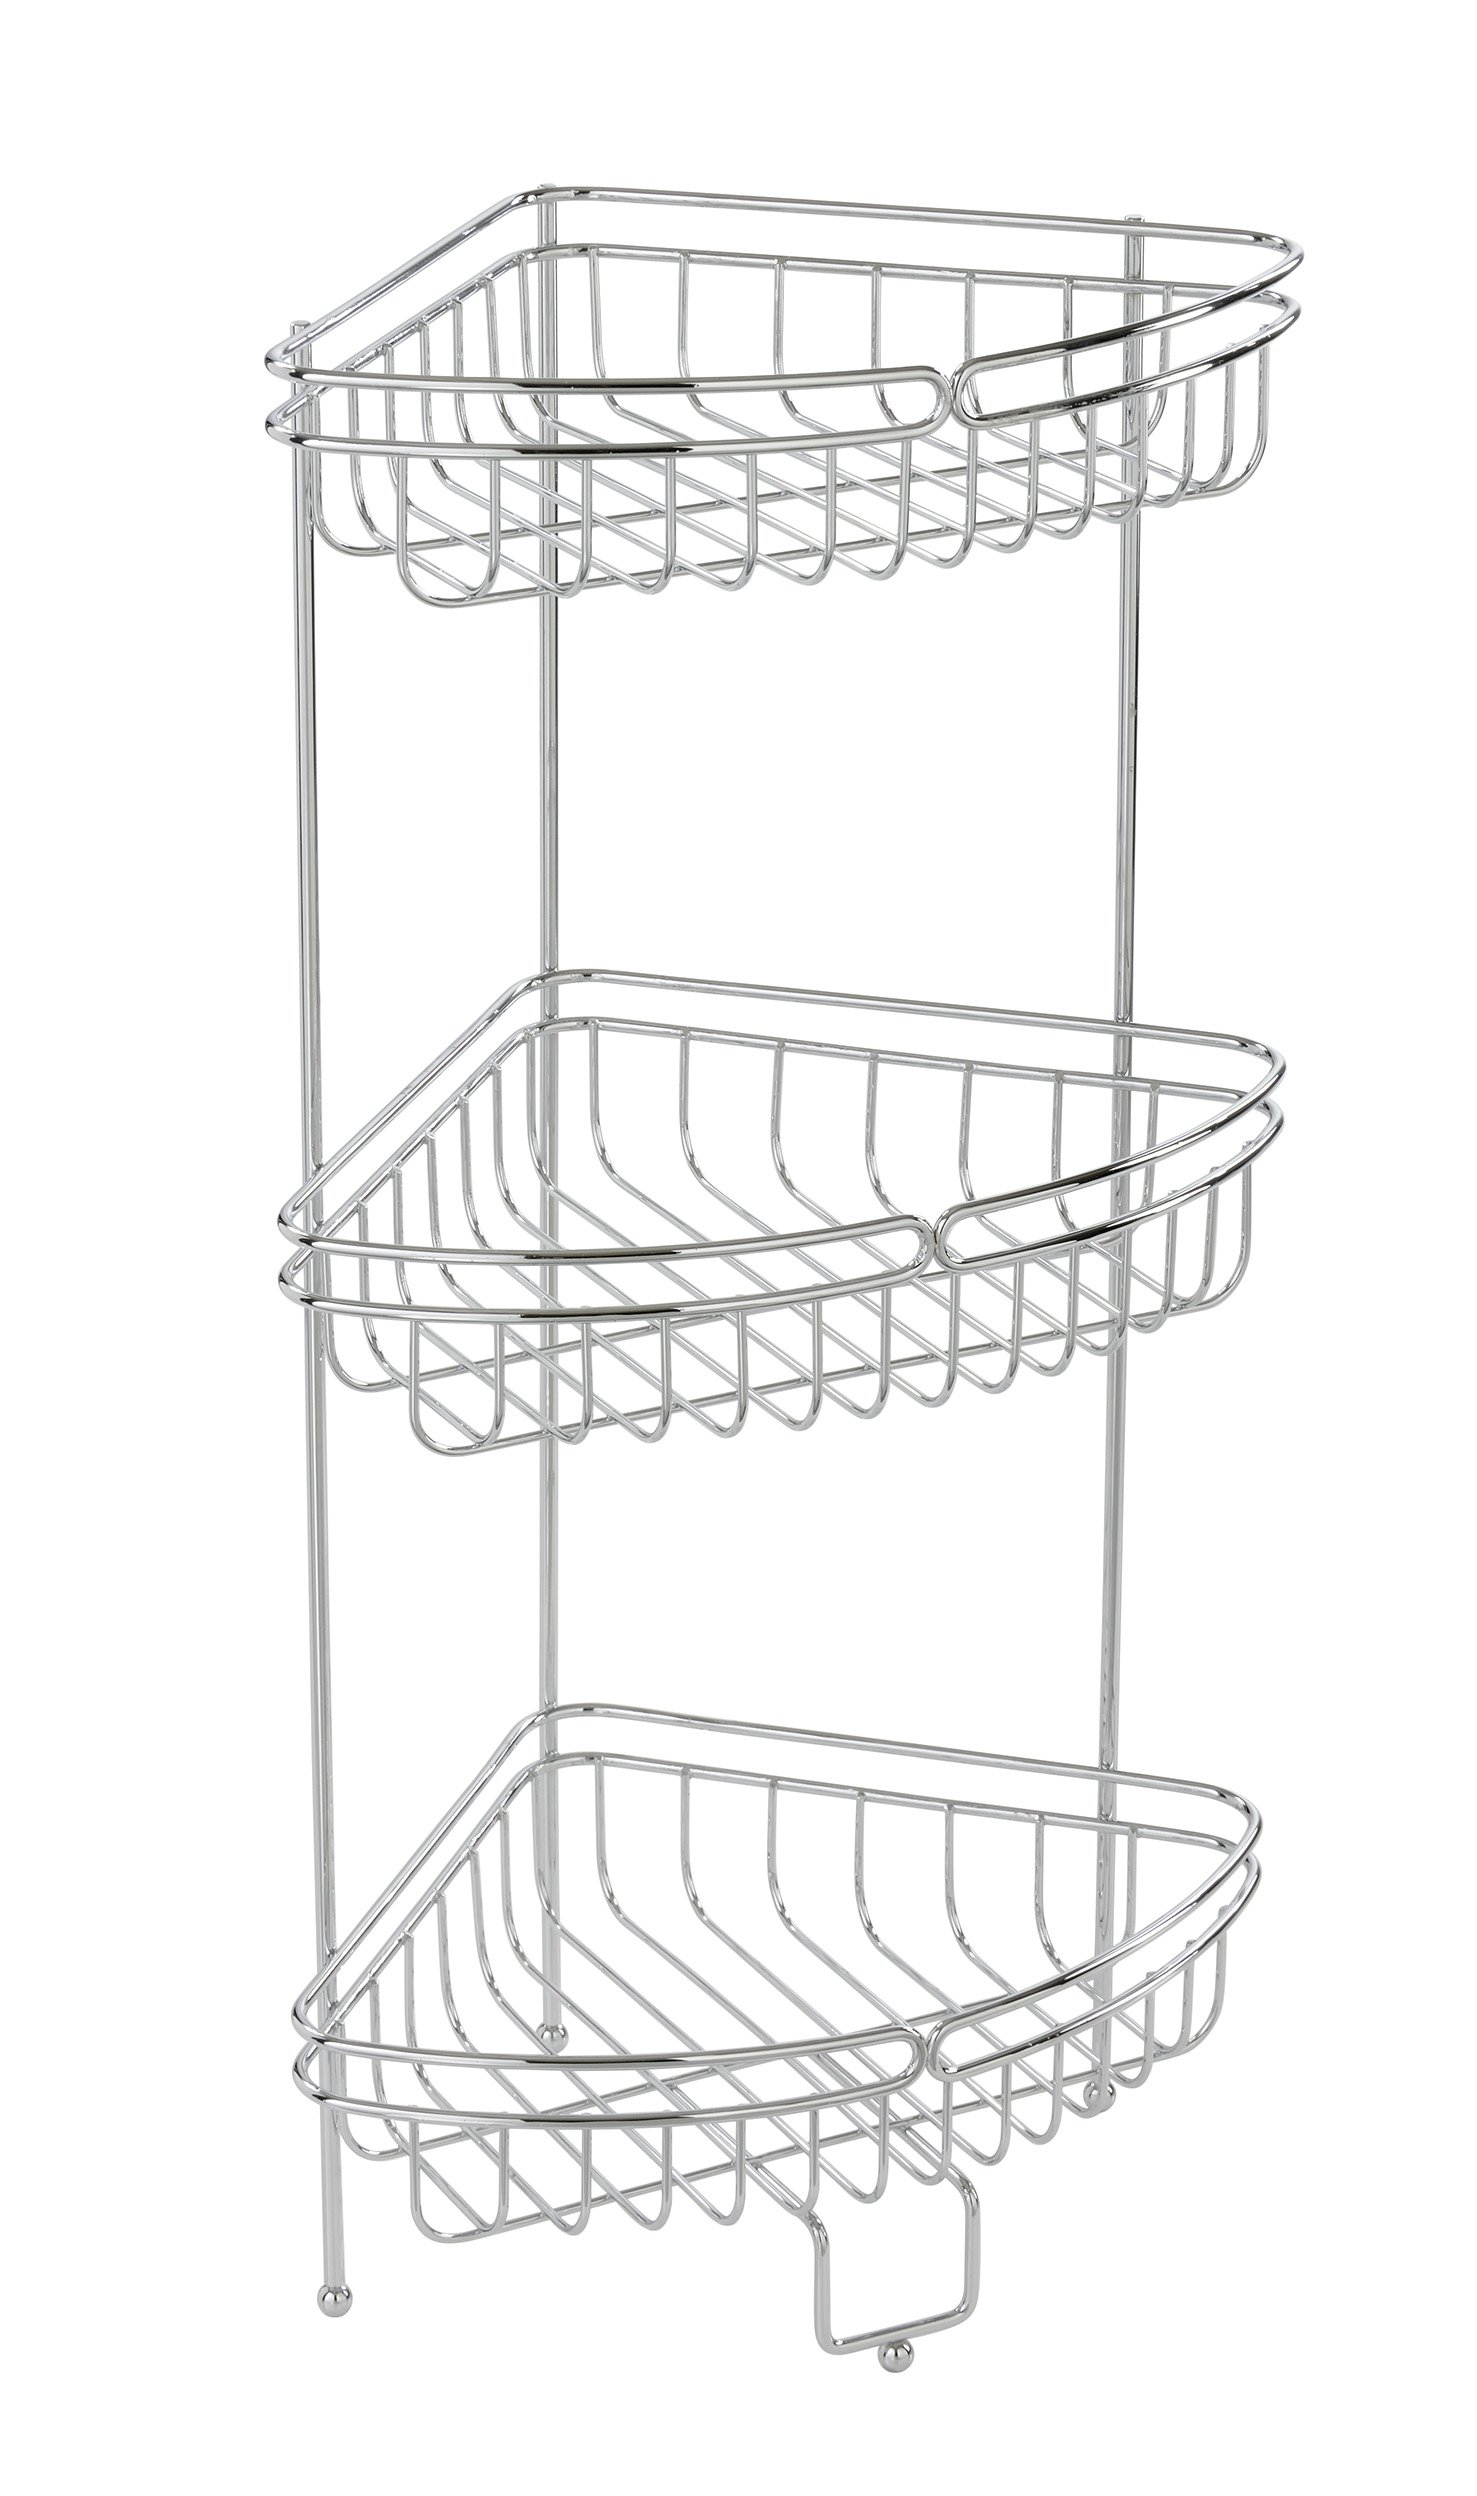 Showerdphoenix Wire Corner Floor Caddy At Barnitts Online Store Uk